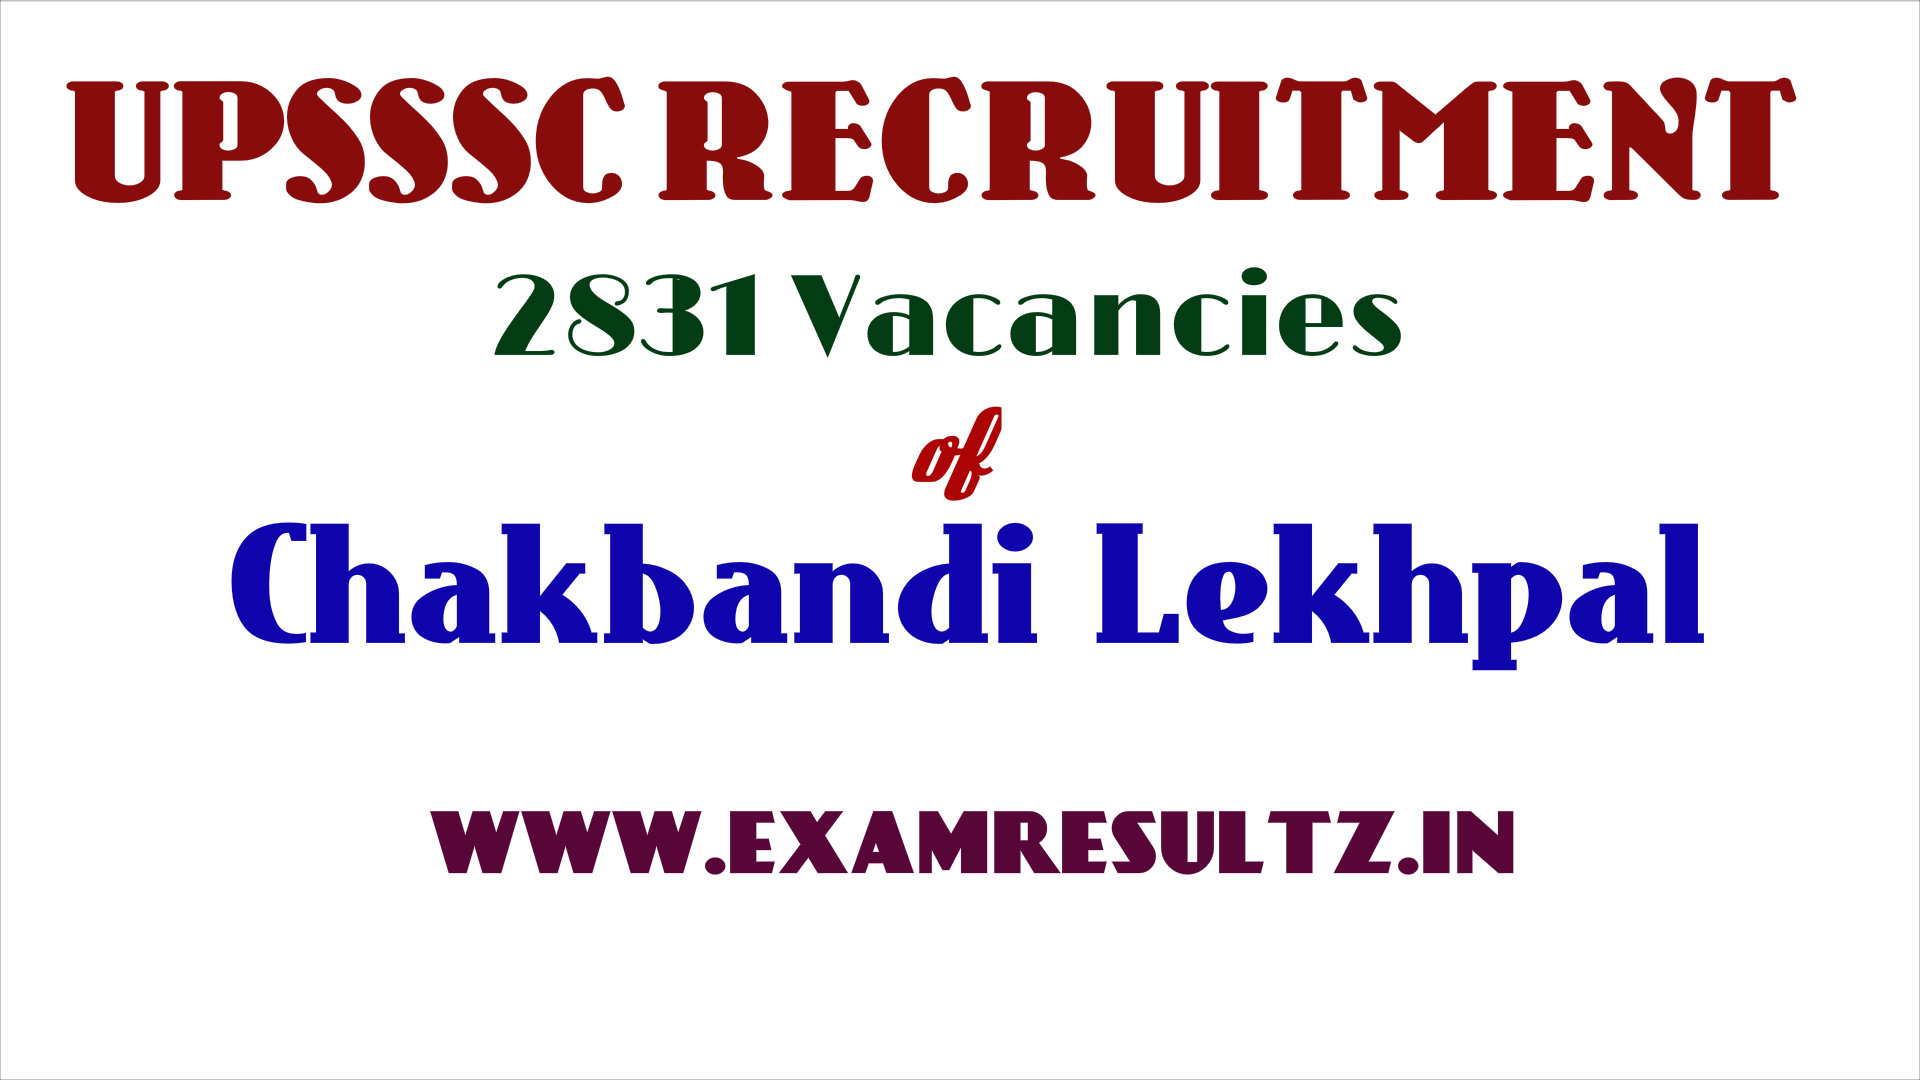 UPSSSC chakbandi lekhpal Recruitment 2831 posts jobs vacancies in up online notice